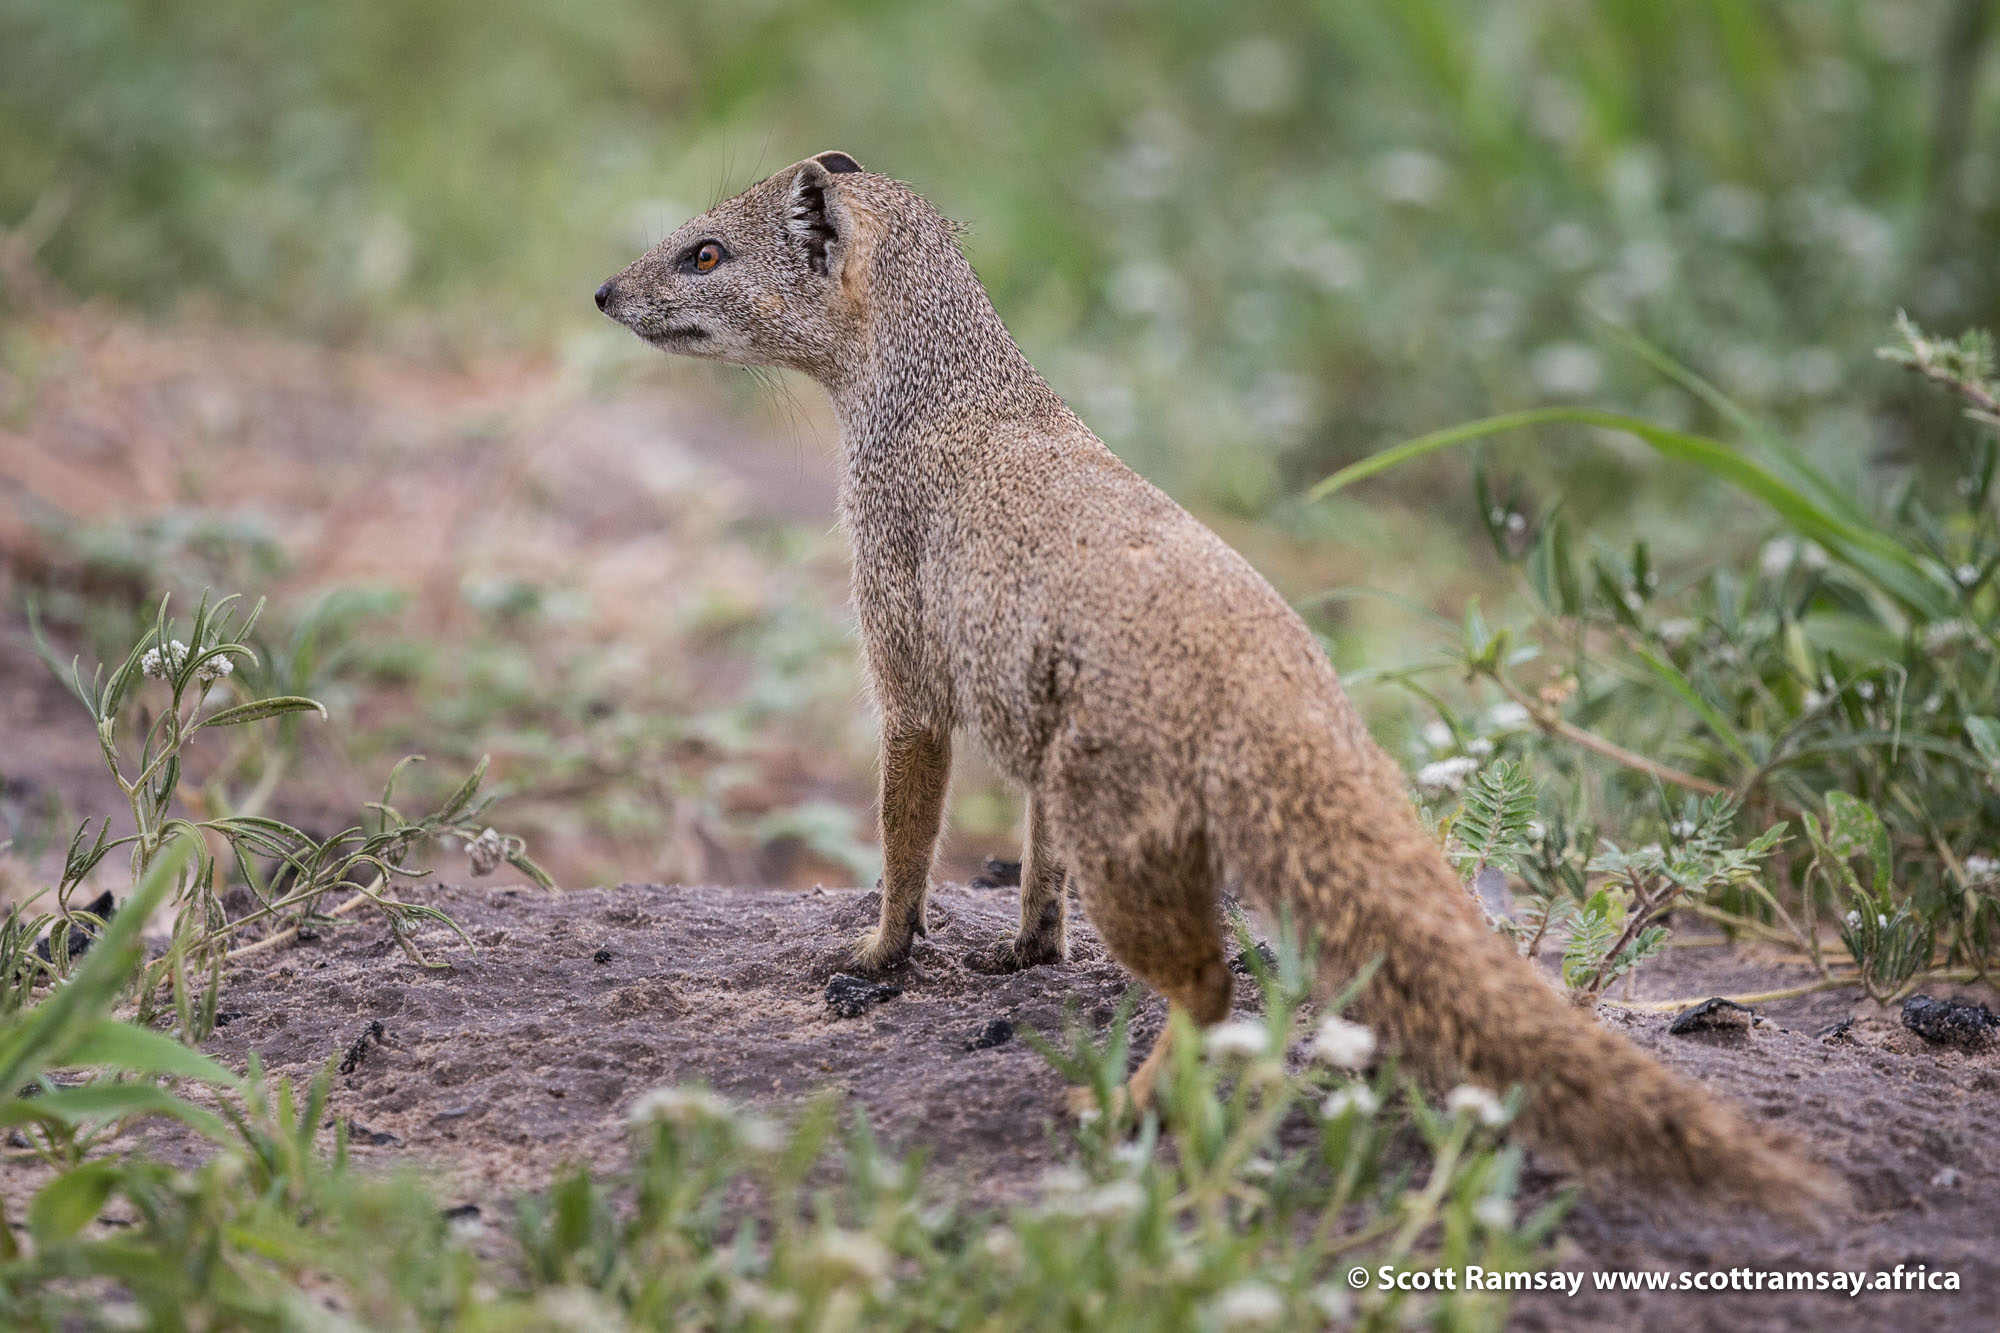 Sharing our campsite at Passarge Pan with this fella, a yellow mongoose. He was probably the alpha male in the colony, as he was actively scouting his territory and keeping watch constantly.